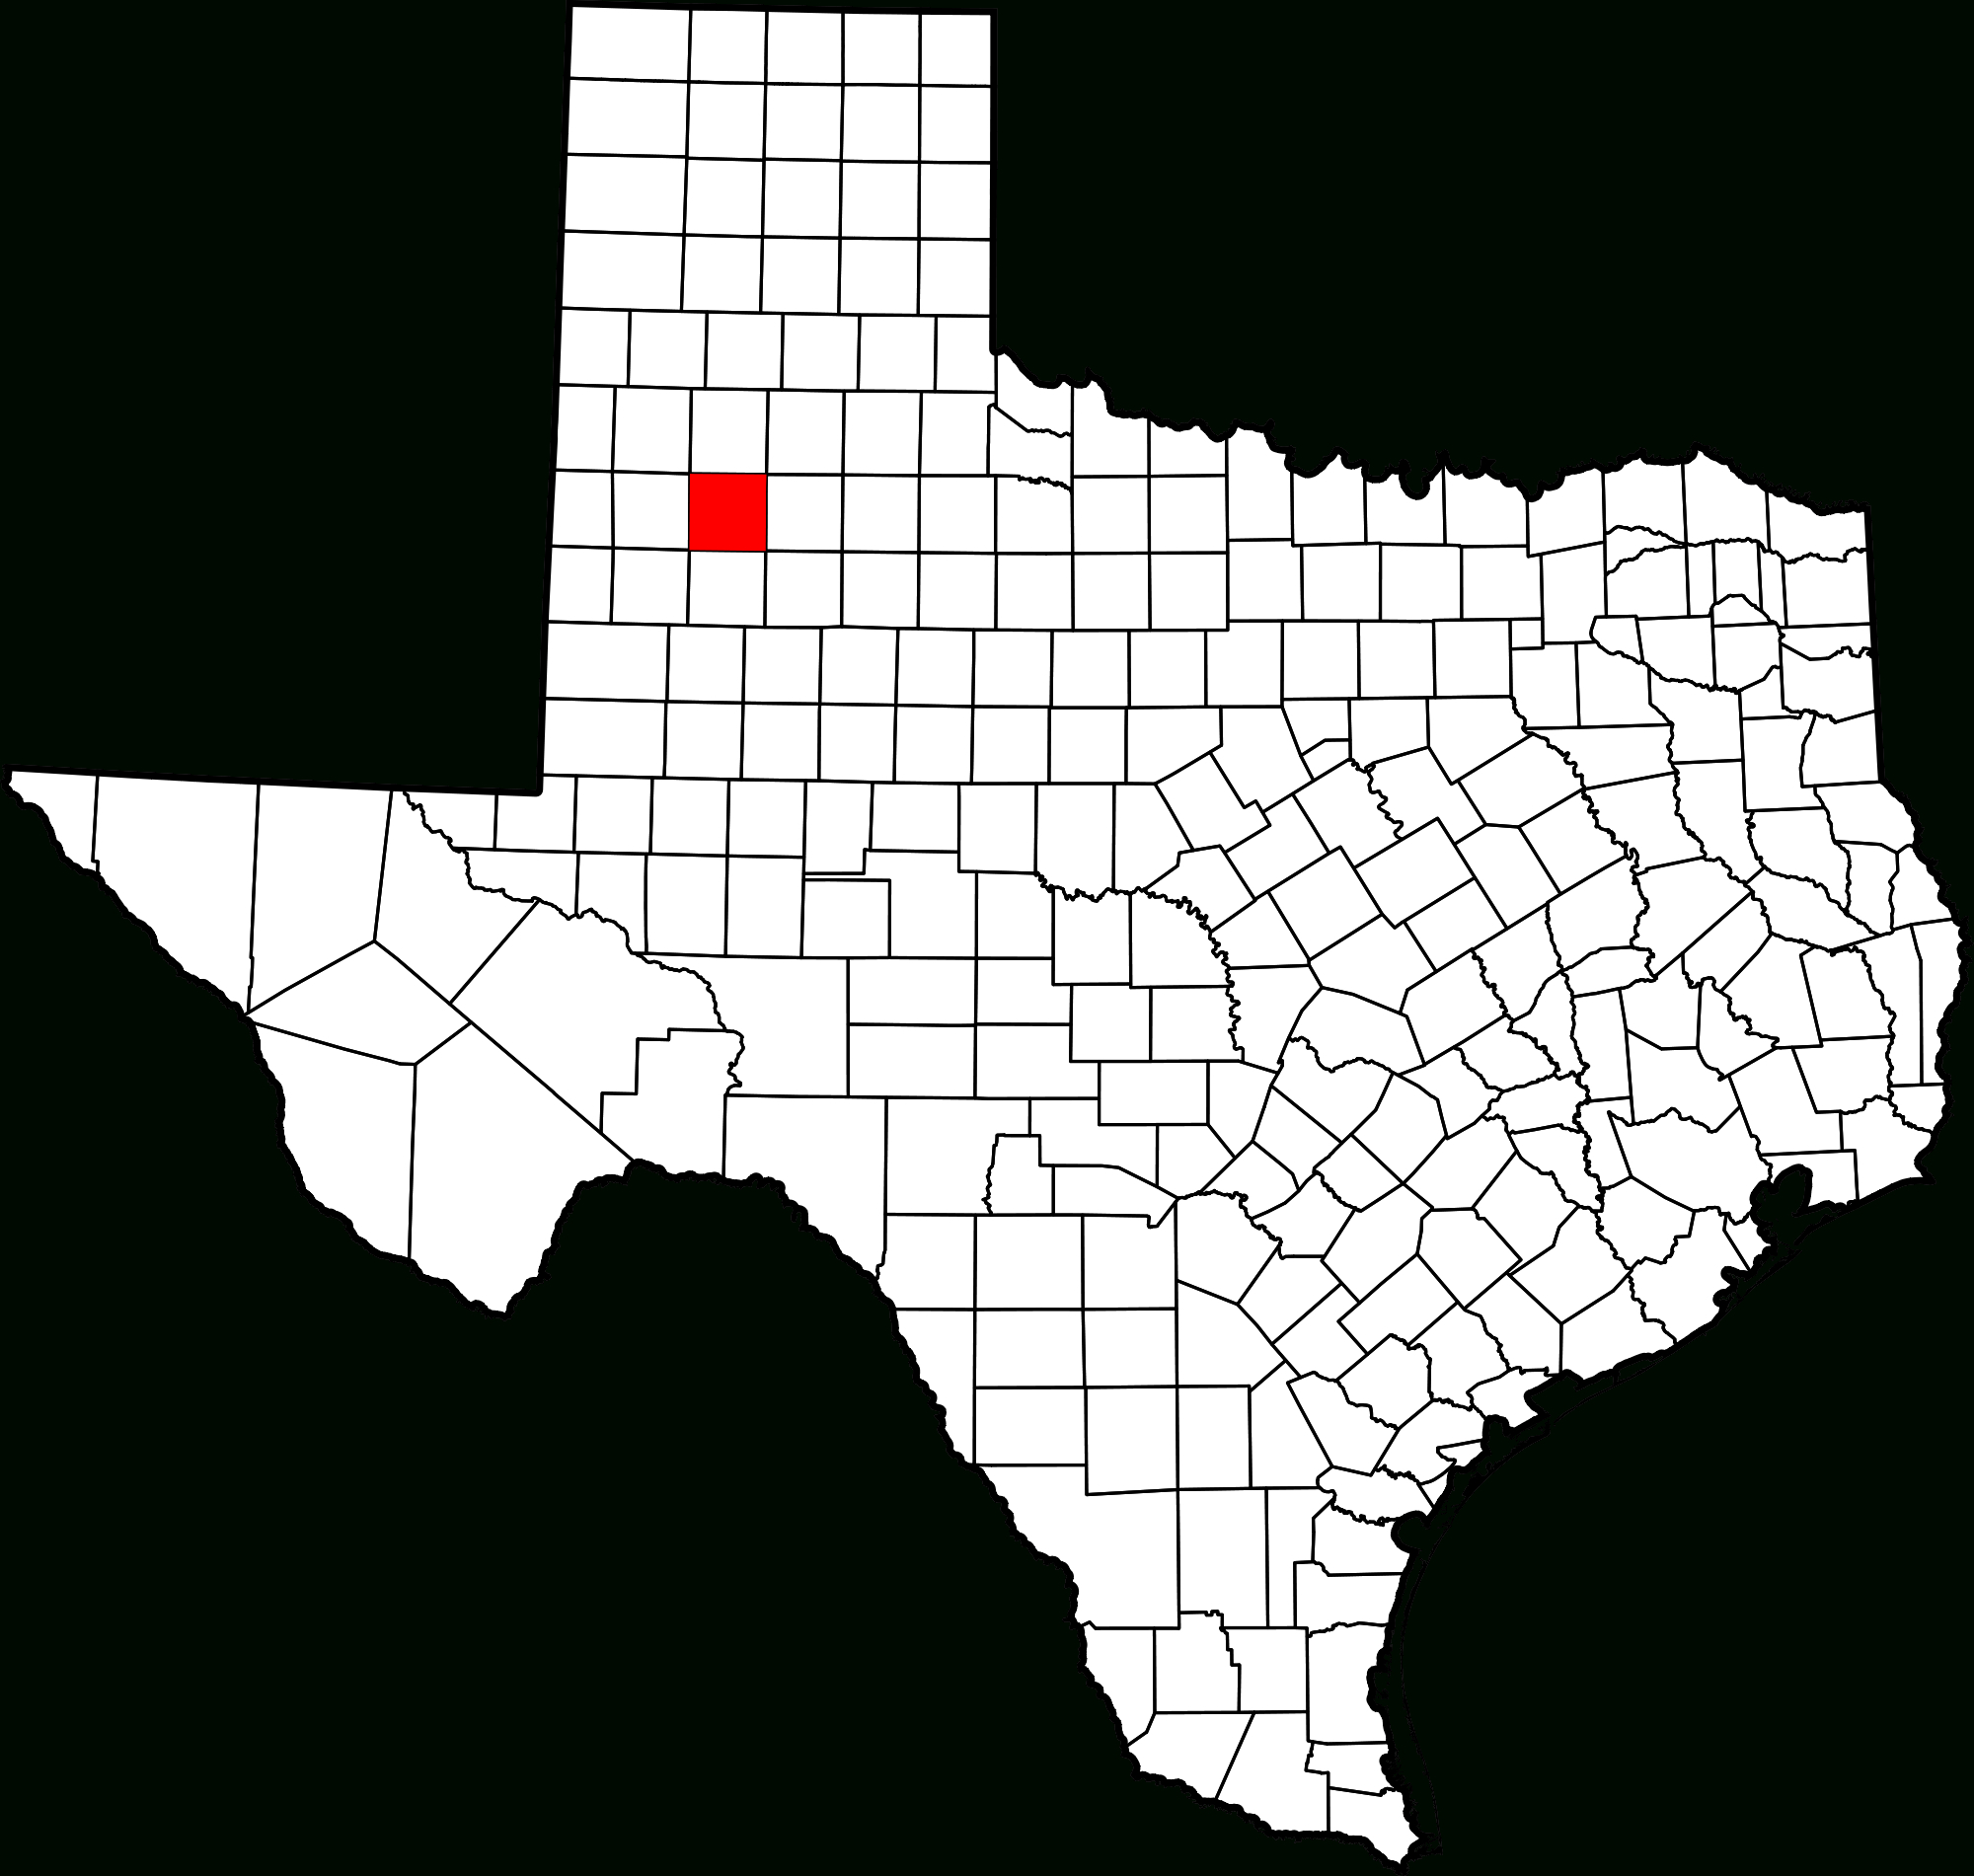 Lubbock Texas On Map | Smoothoperators - Where Is Lubbock Texas On The Map